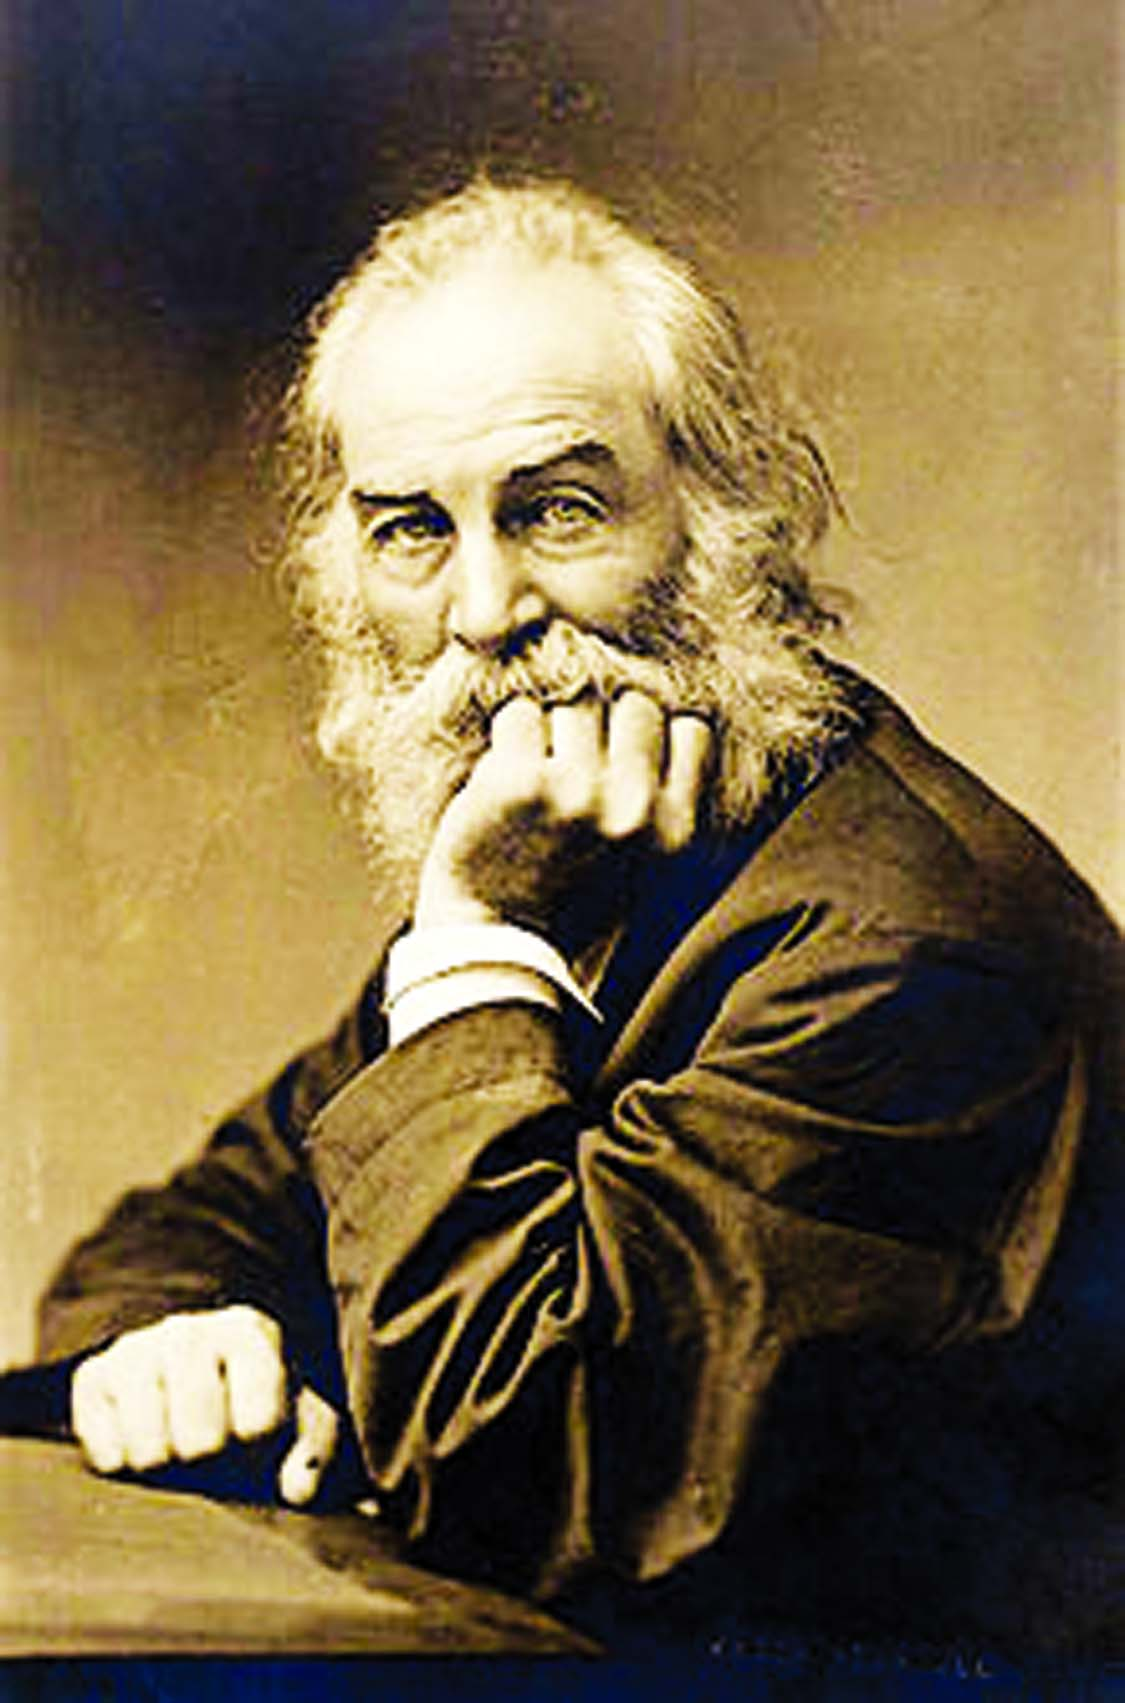 walt whitman transcendentalism essays essay poet walt whitman father of verse the new nation transcendentalism essays